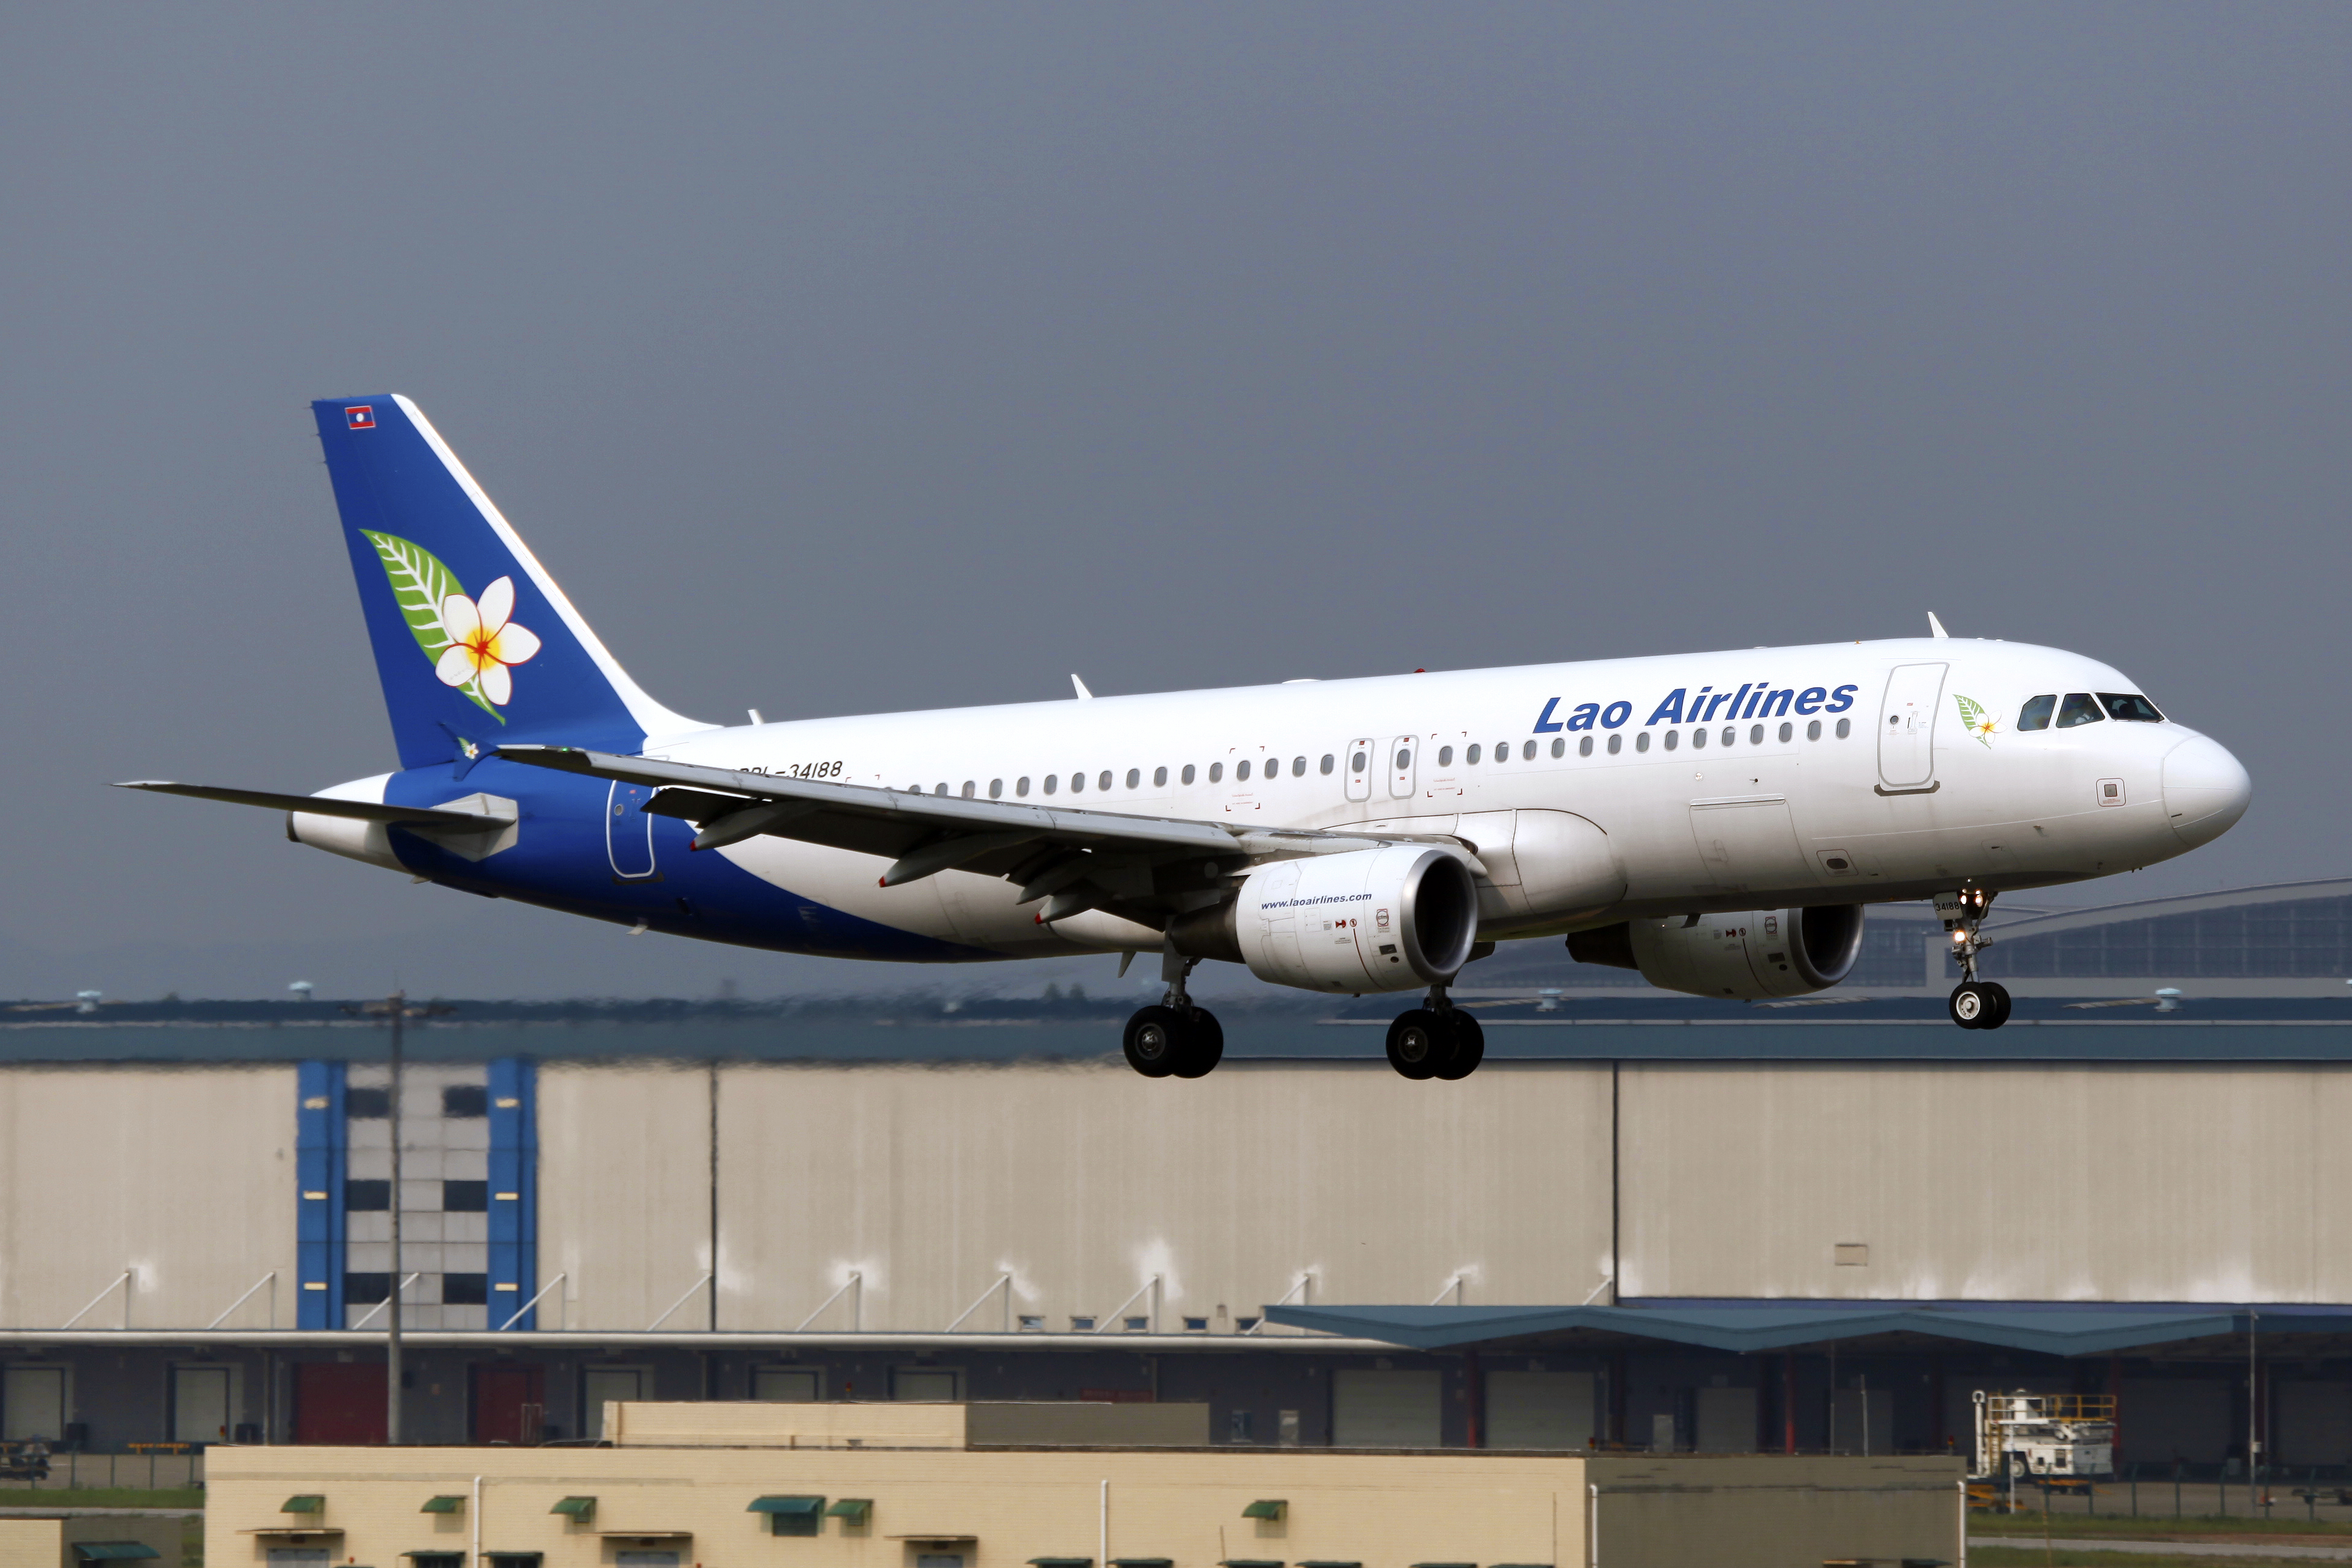 File:RDPL-34188 - Lao Airlines - Airbus A320-214 - CAN (14730601458).jpg -  Wikimedia Commons